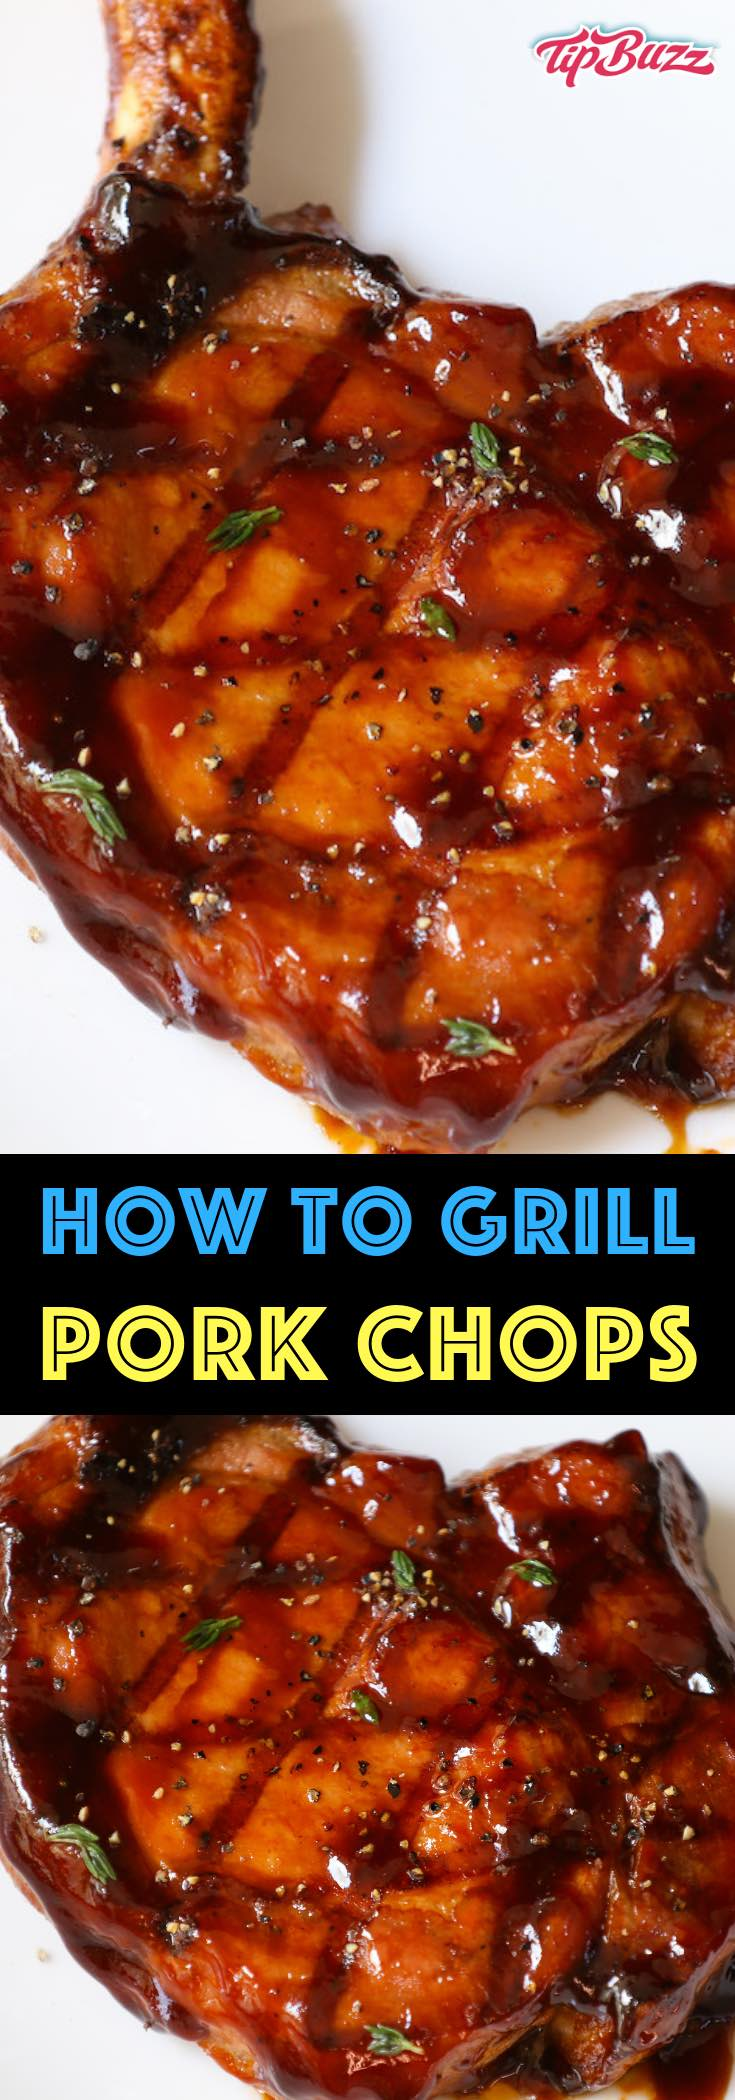 Learn how long to grill pork chops in order to get tender and juicy grilled pork chops every time whether it's boneless pork chops or bone in pork chops